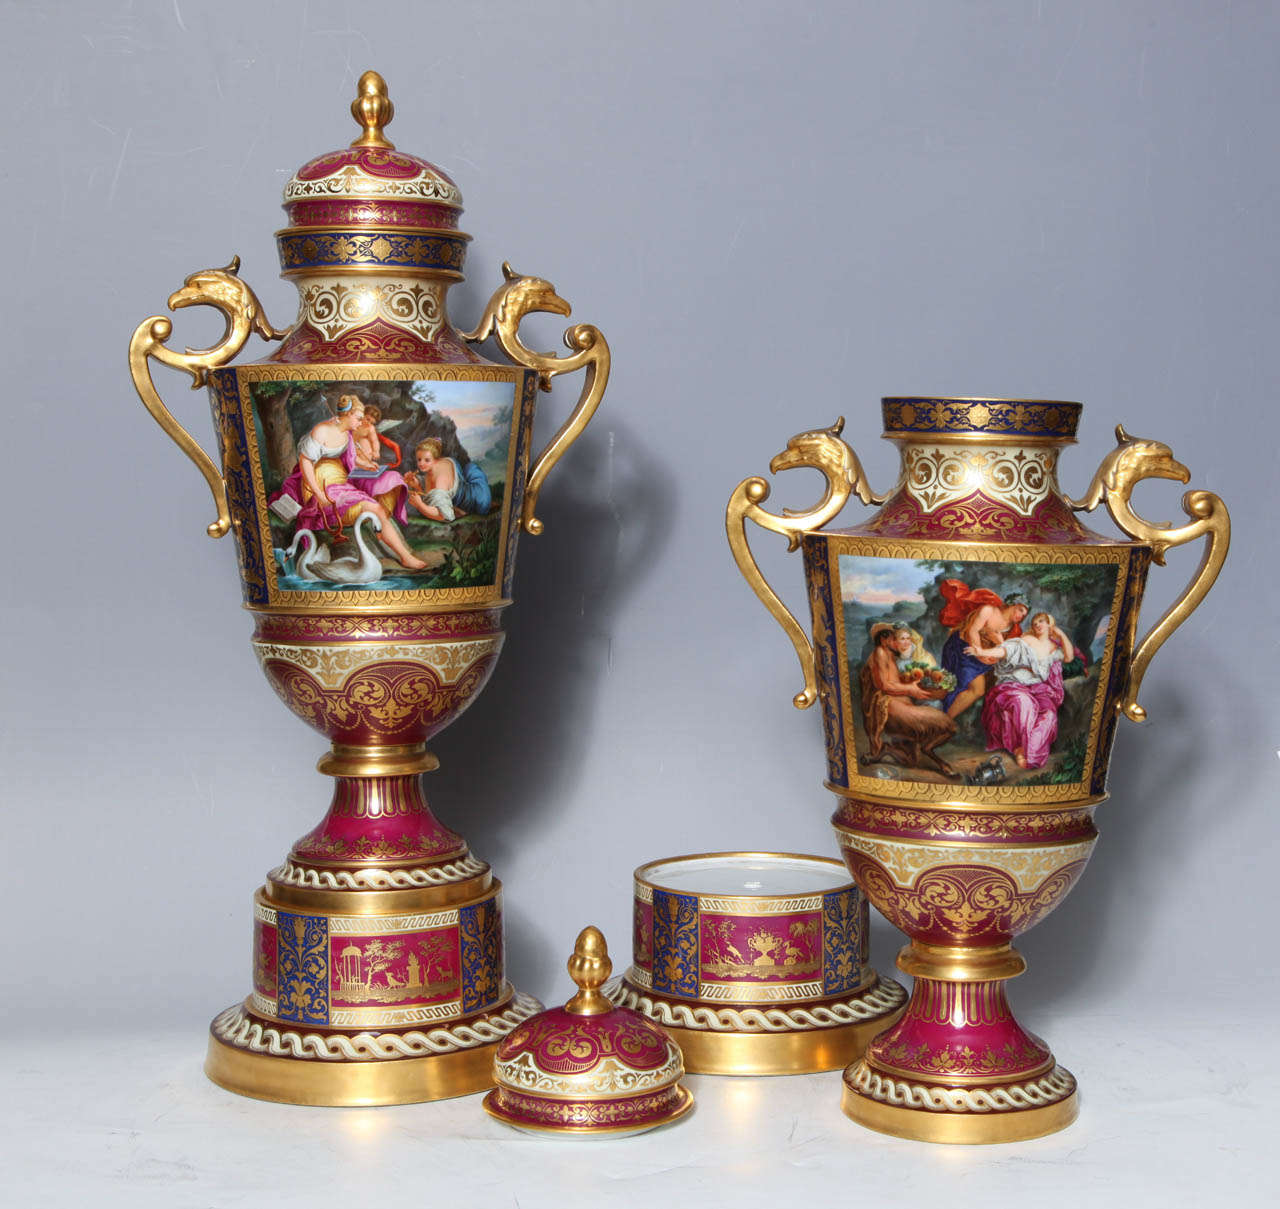 Gold Magnificent Pair Royal Vienna Porcelain Covered Urns on Stands with Eagles For Sale